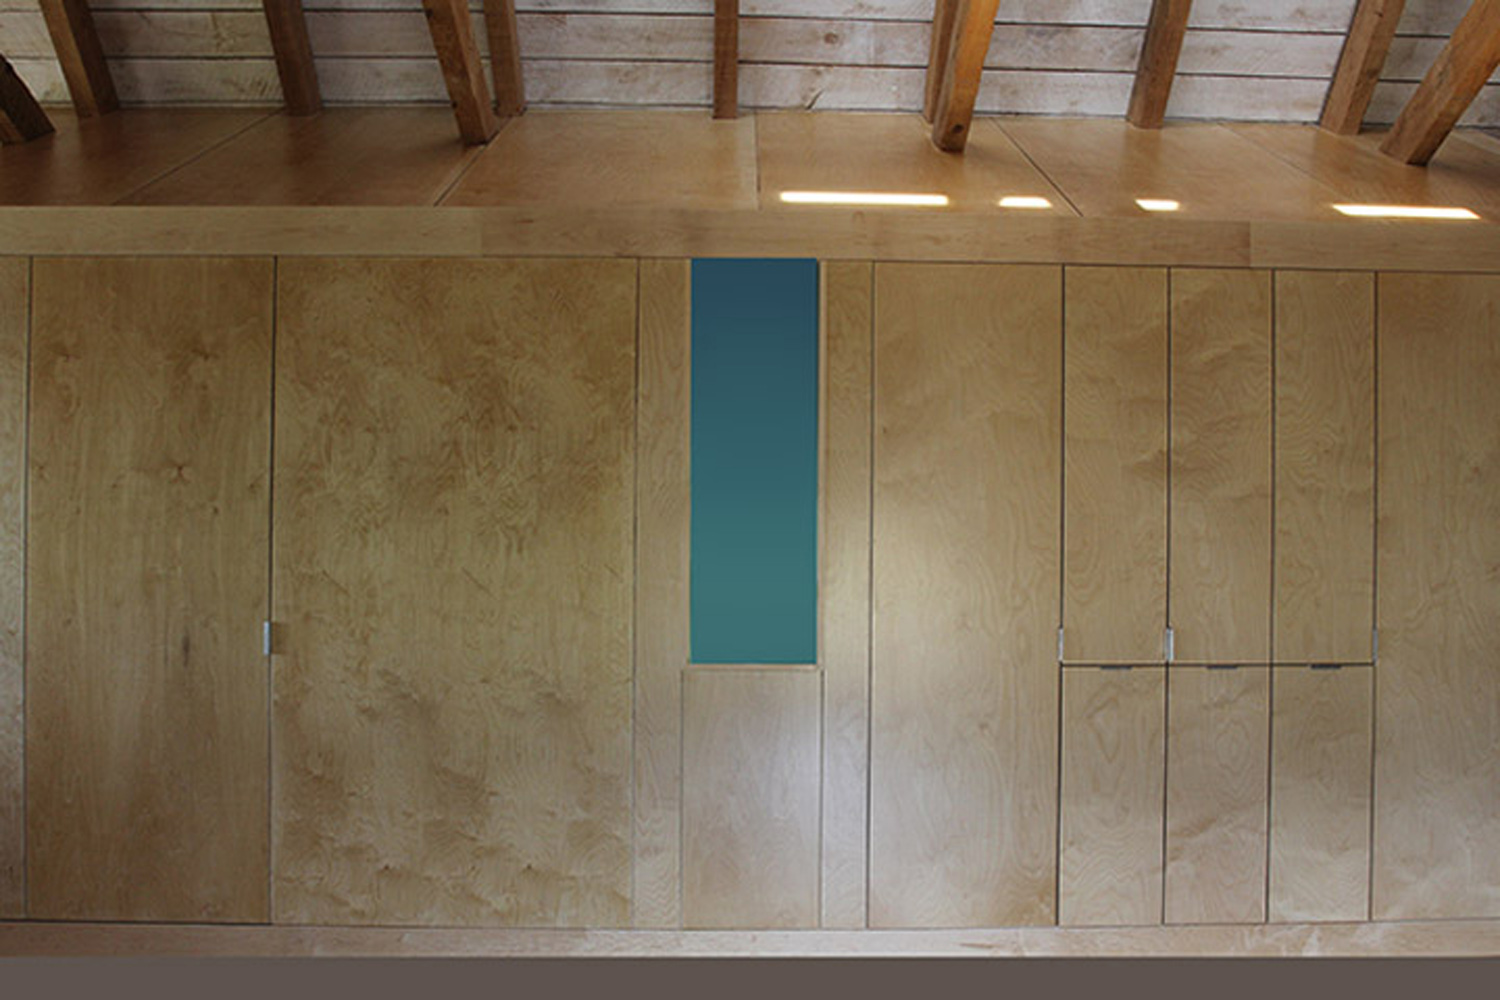 houdinidesign_ARCHITECTS_Ritchie-Gidney_Residence_Sandy-Cove_Digby_Acadian+Timber_Frame_Modern_Renovation_Hidden_Storage.jpg